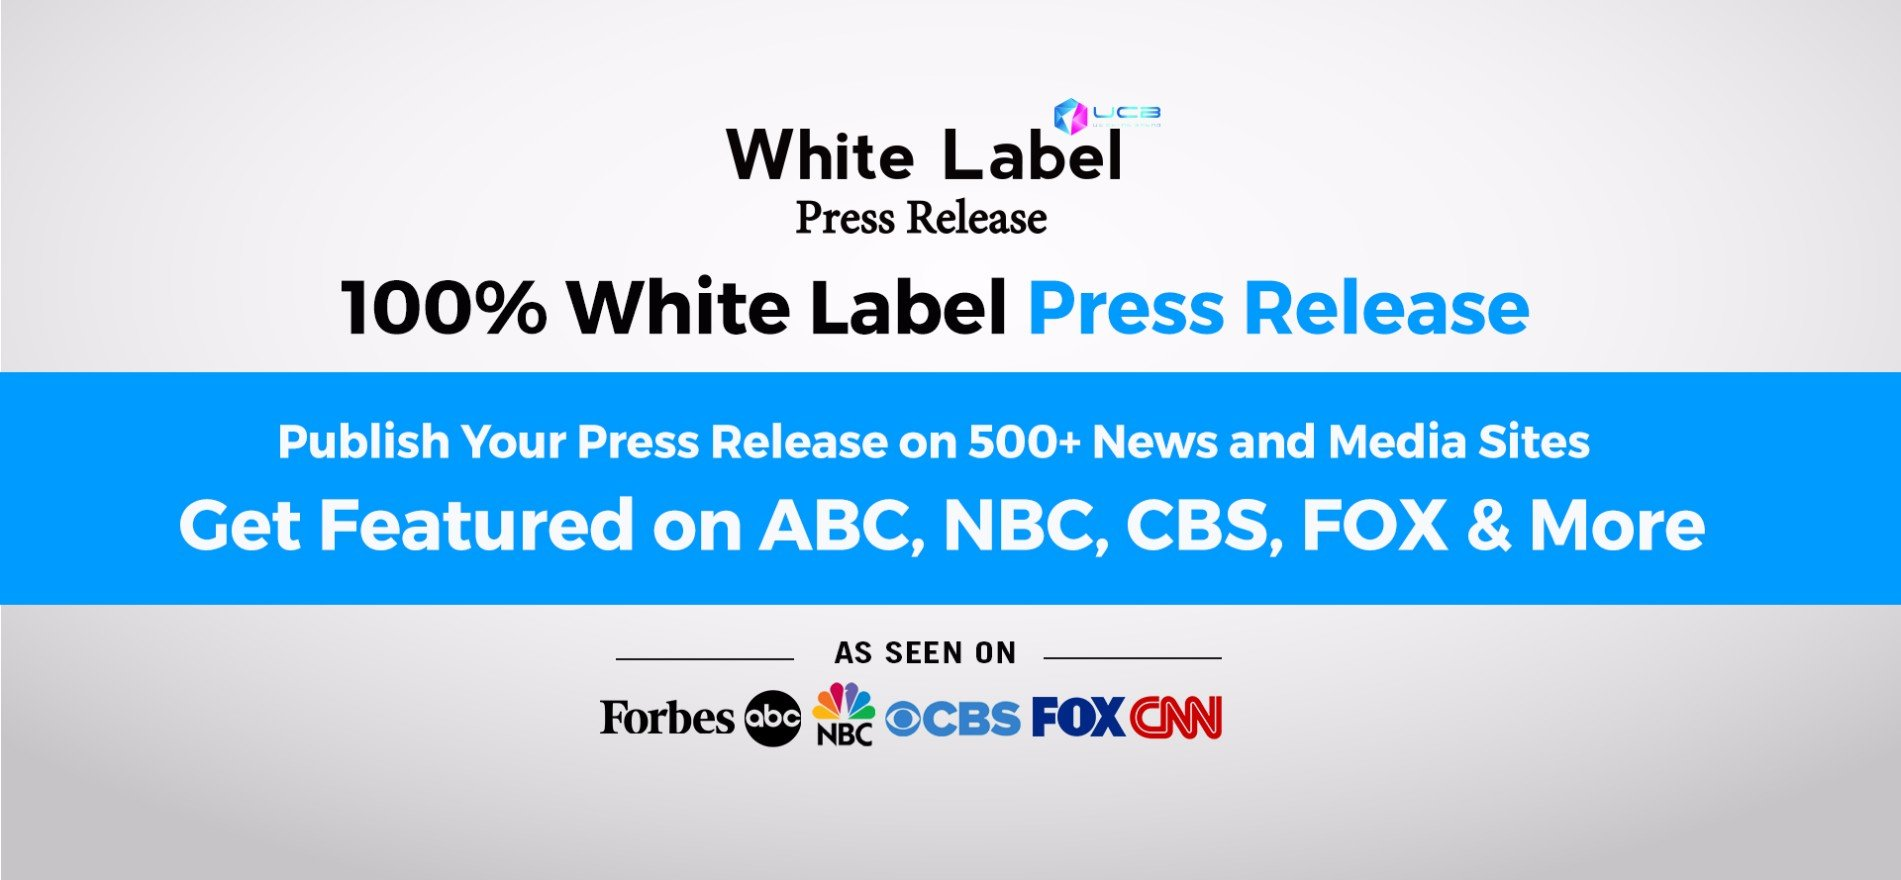 White Label Press Release